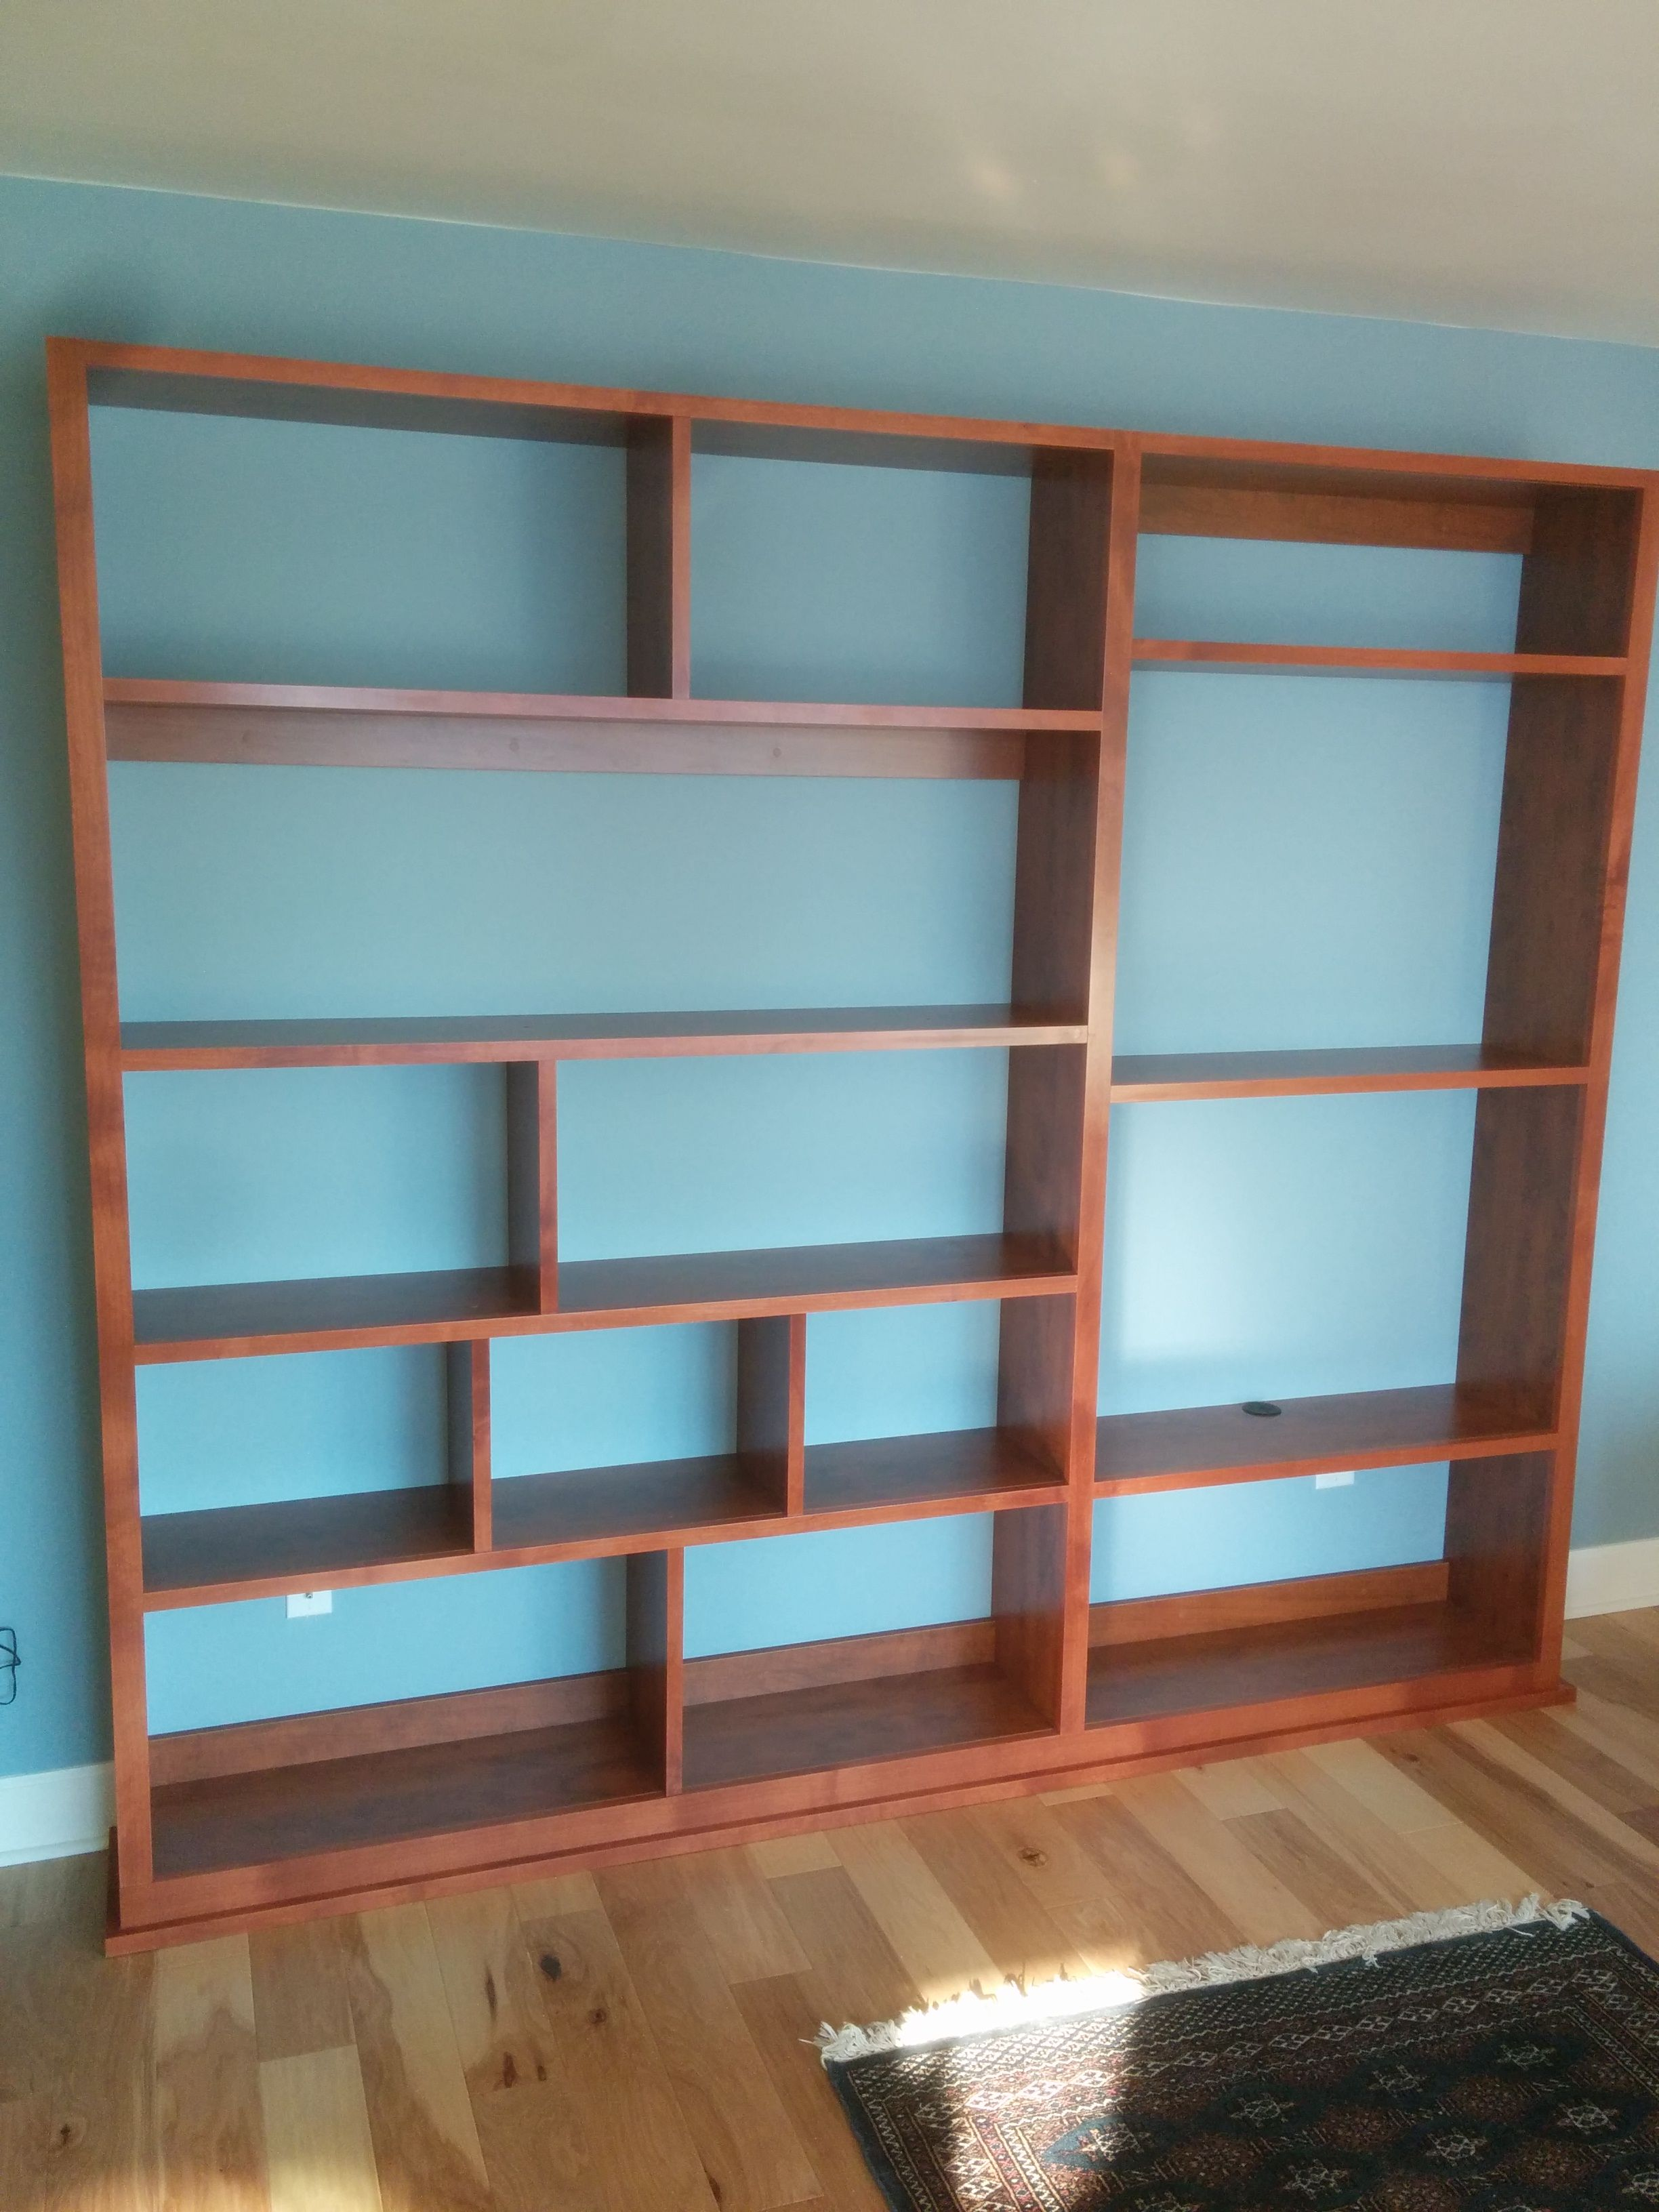 Offset Shelves For A Bookshelf, Display And Tv Stand Trimmed Out